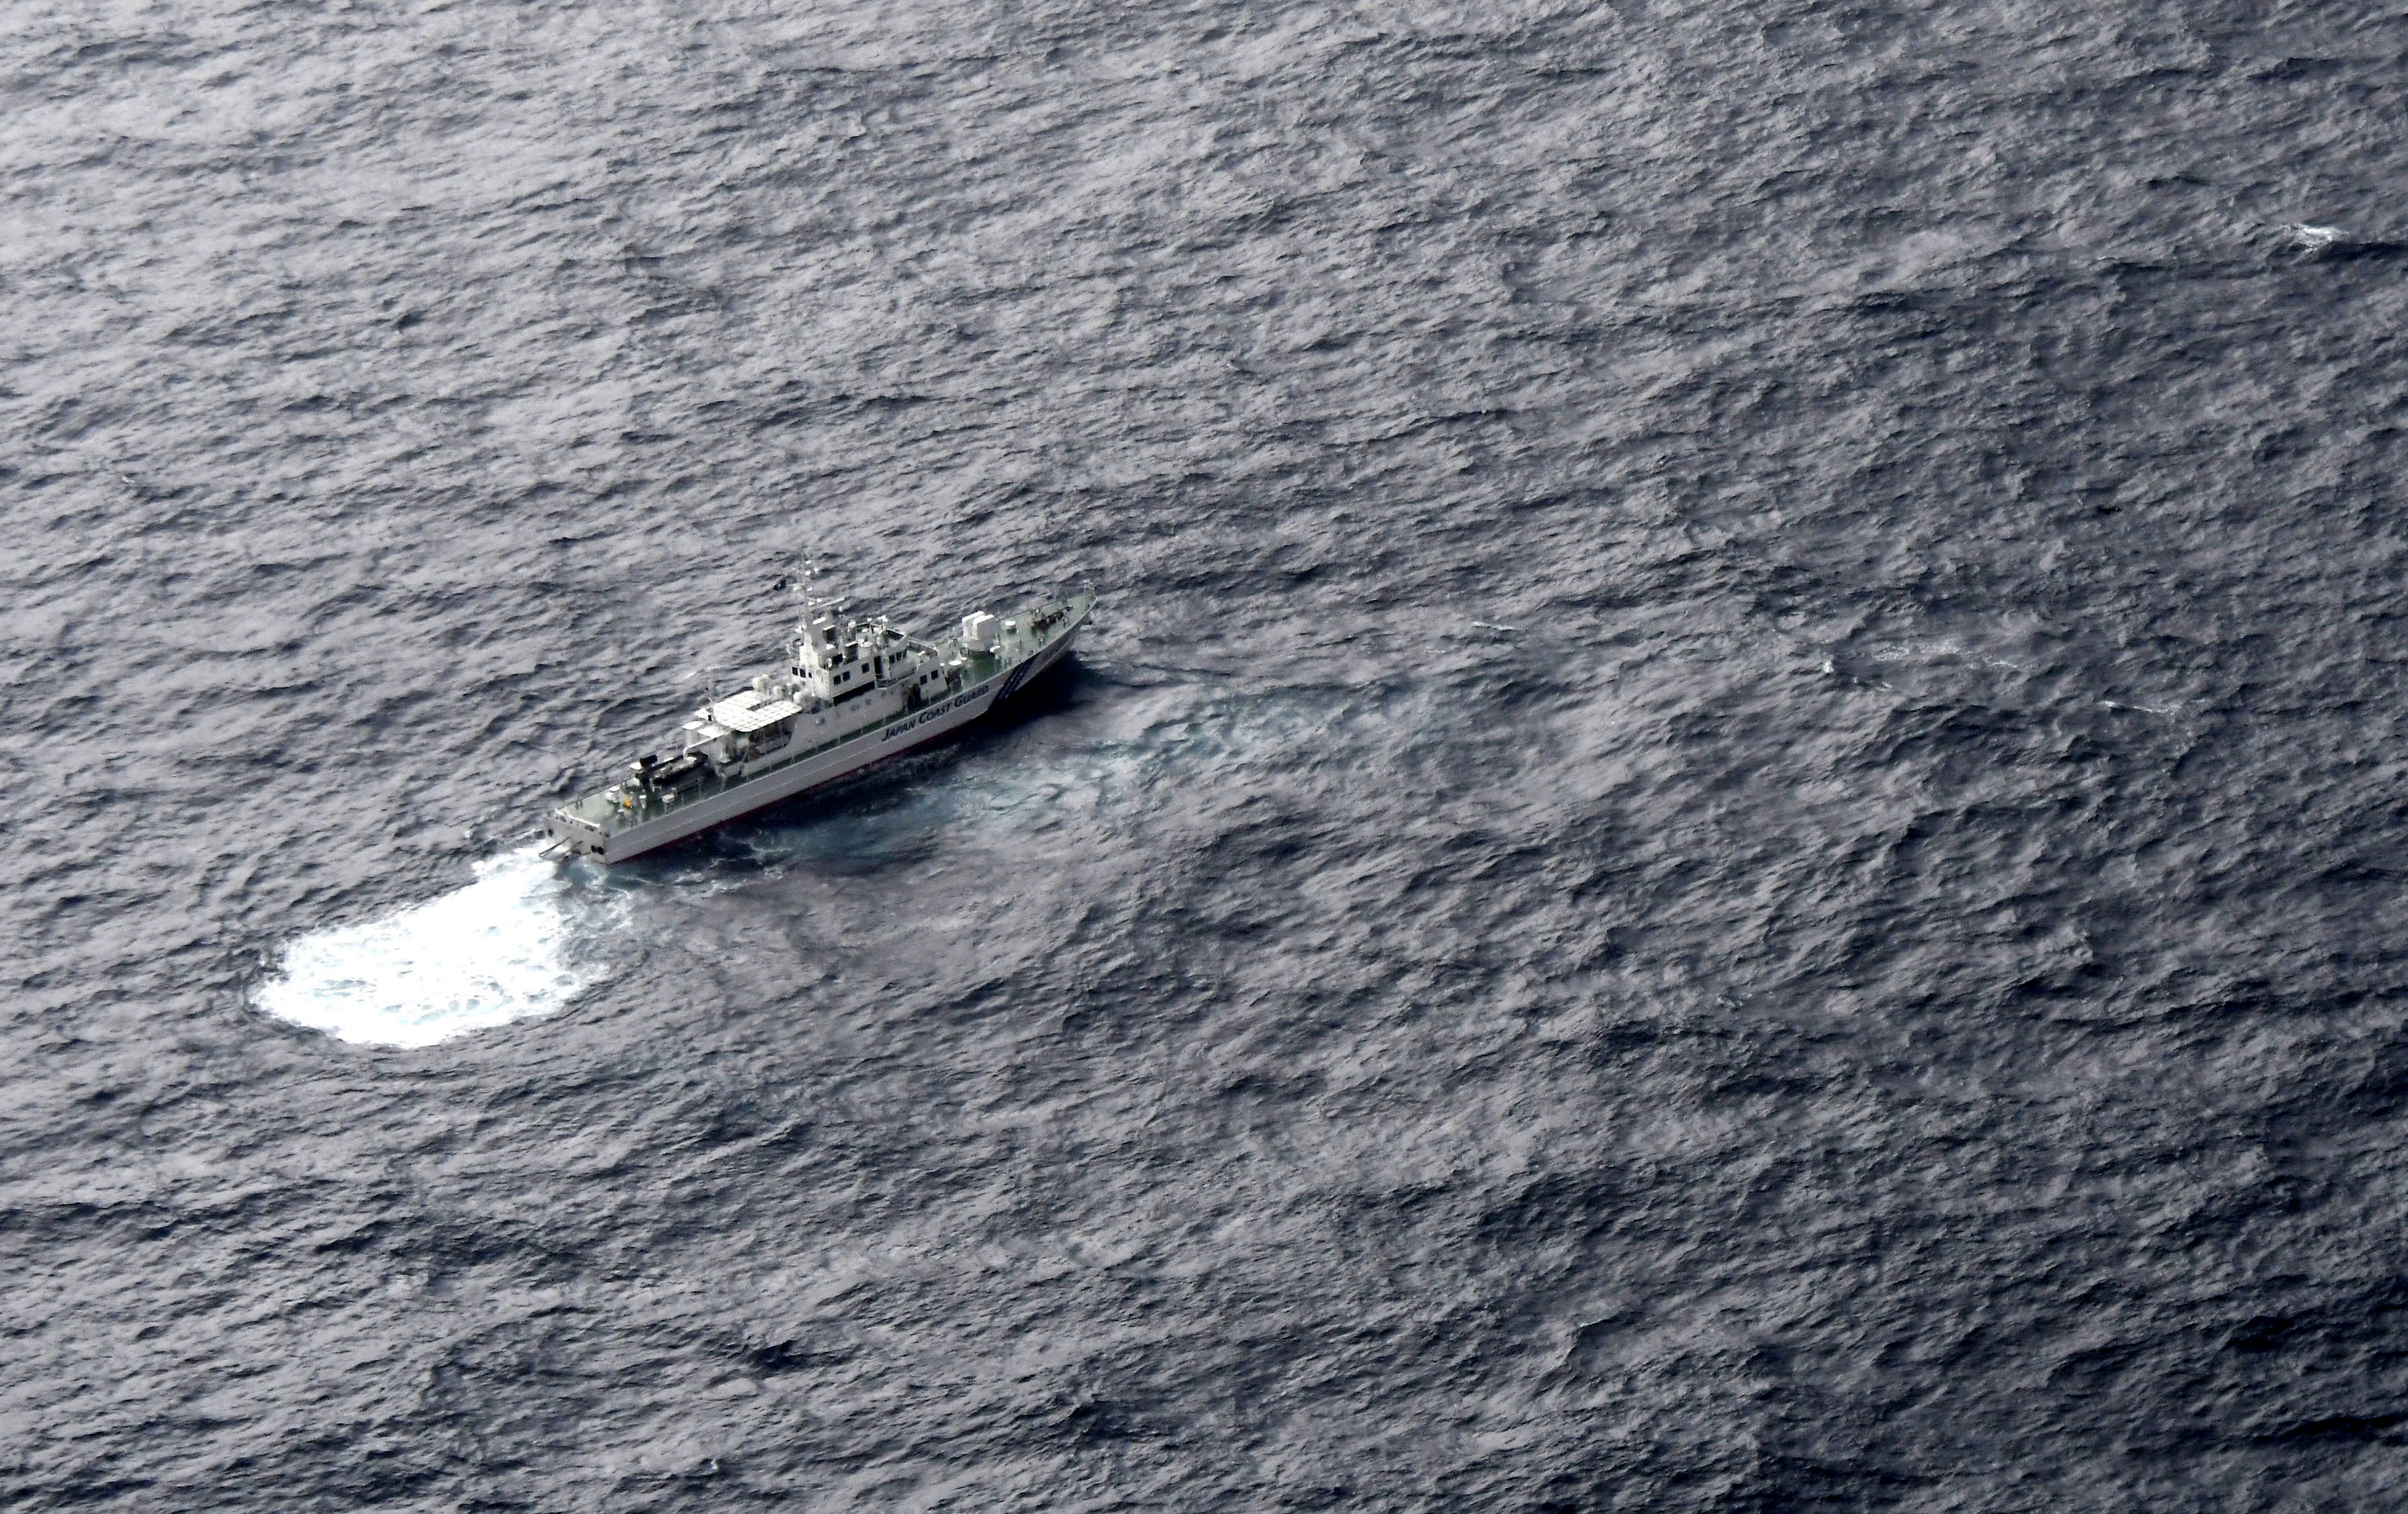 In this aerial photo, Japan's Coast Guard ship is seen at sea during a search operation for U.S. Marine refueling plane and fighter jet off Muroto, Kochi prefecture, southwestern Japan, Thursday, Dec. 6, 2018. A Marine refueling plane and a fighter jet crashed into the Pacific Ocean off Japan's southwestern coast after a midair collision early Thursday, and rescuers found one of the seven crew members in stable condition while searching for the others, officials said. The U.S. Marine Corps said that the 2 a.m. crash involved an F/A-18 fighter jet and a KC-130 refueling aircraft during regular training after the planes took off from their base in Iwakuni, near Hiroshima in western Japan. (Kyodo News via AP)